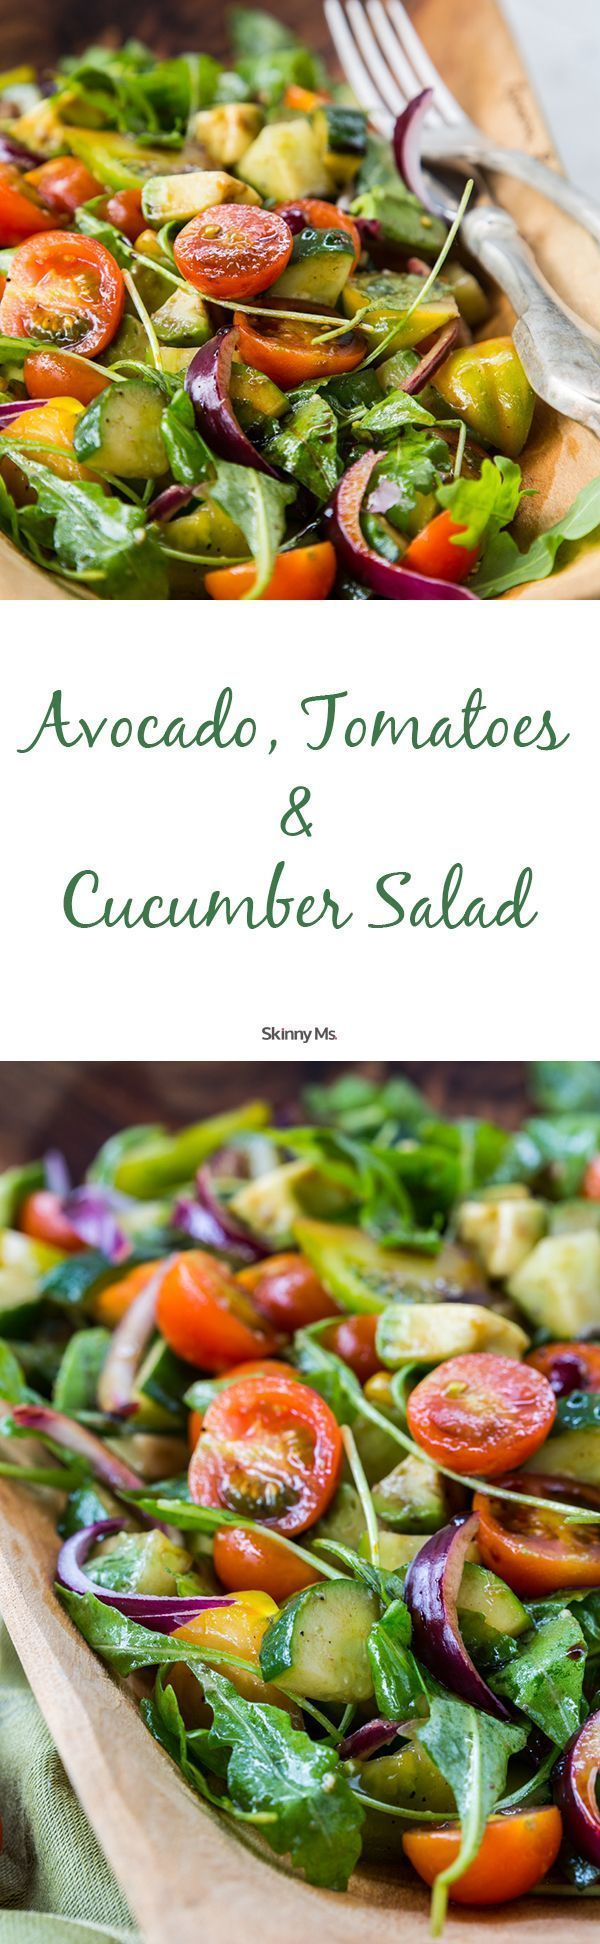 Enjoy a refreshing Avocado, Tomatoes & Cucumber Salad that takes only minutes to prepare!  #avocado #tomatoes #cucumbersalad